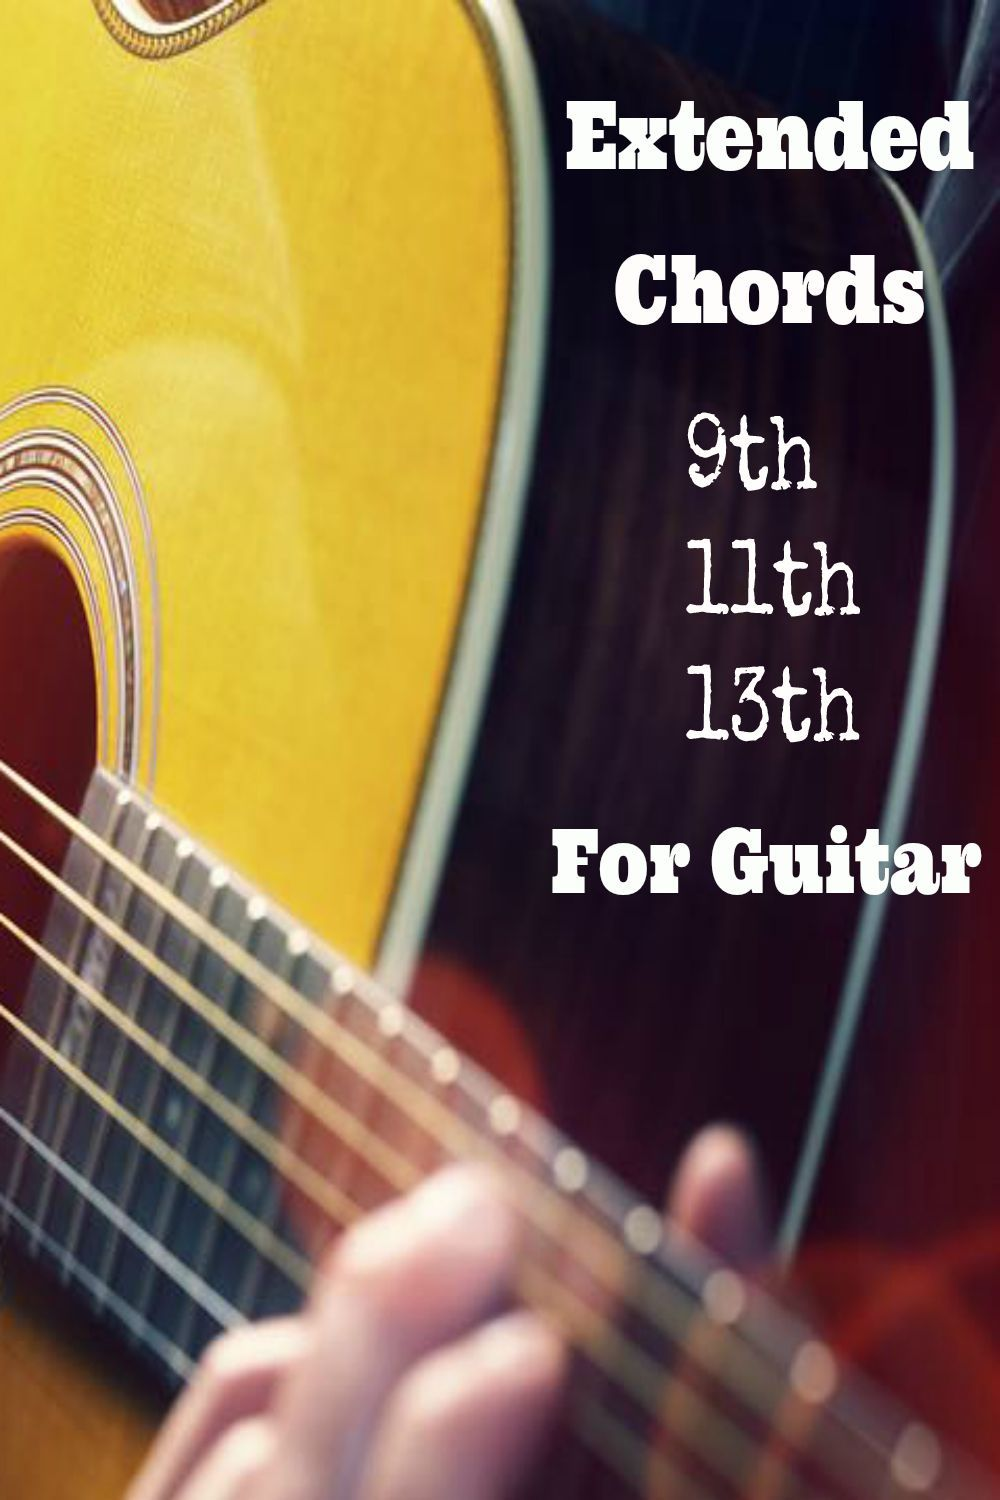 Extended Chords Are Usually Used In Jazz Music But Also In Other